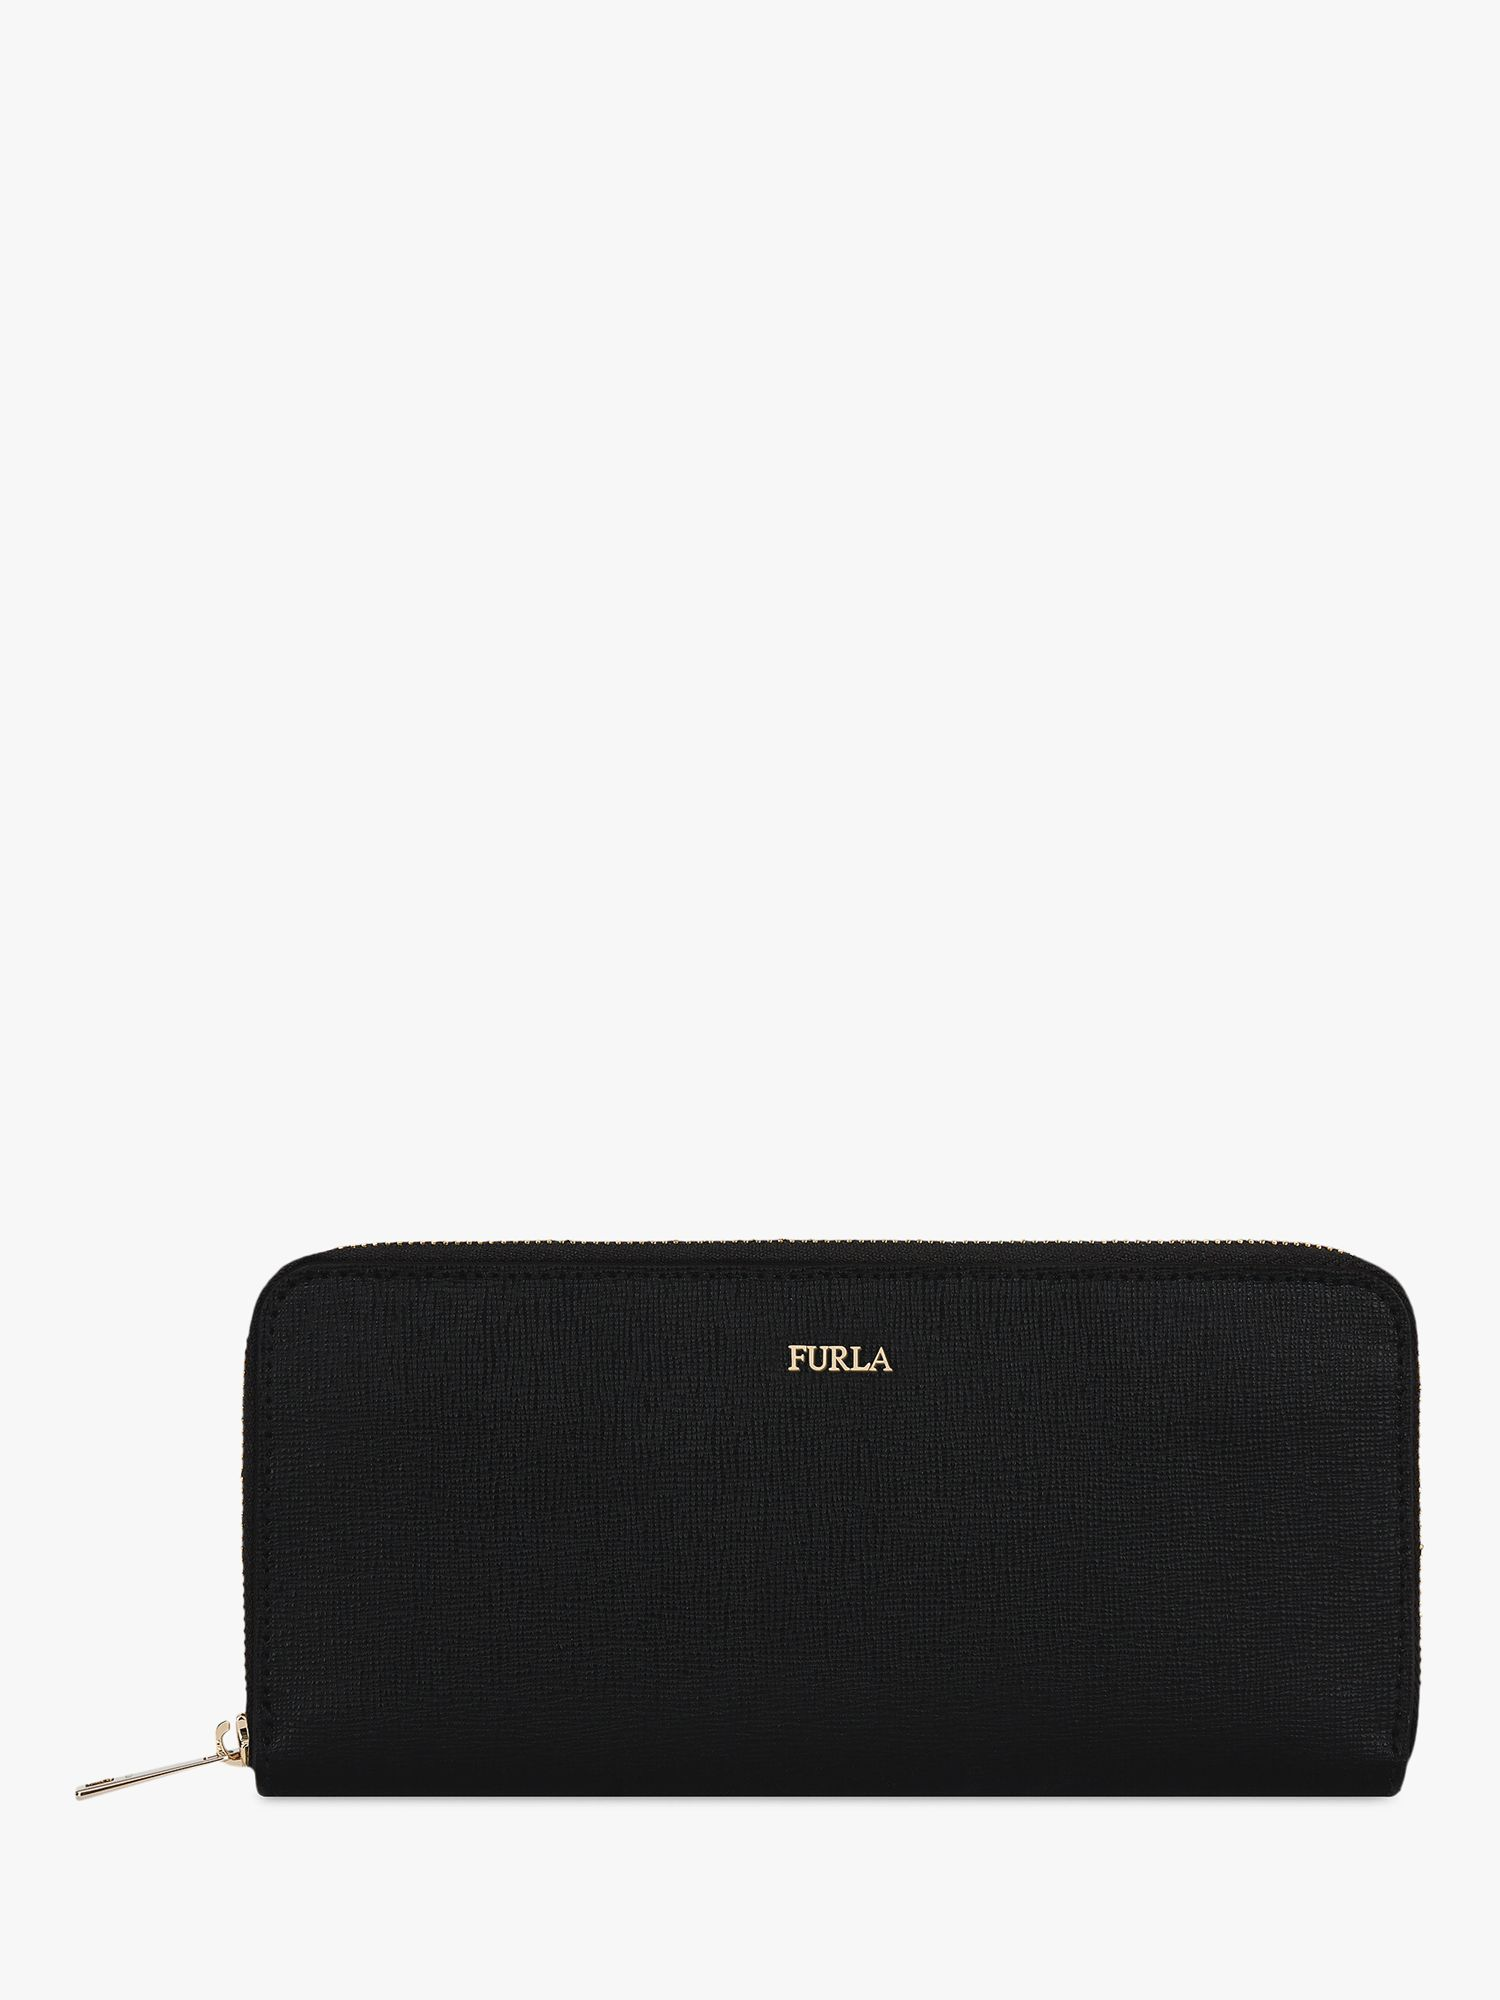 Furla Furla Babylon Leather Zip Around Purse, Black